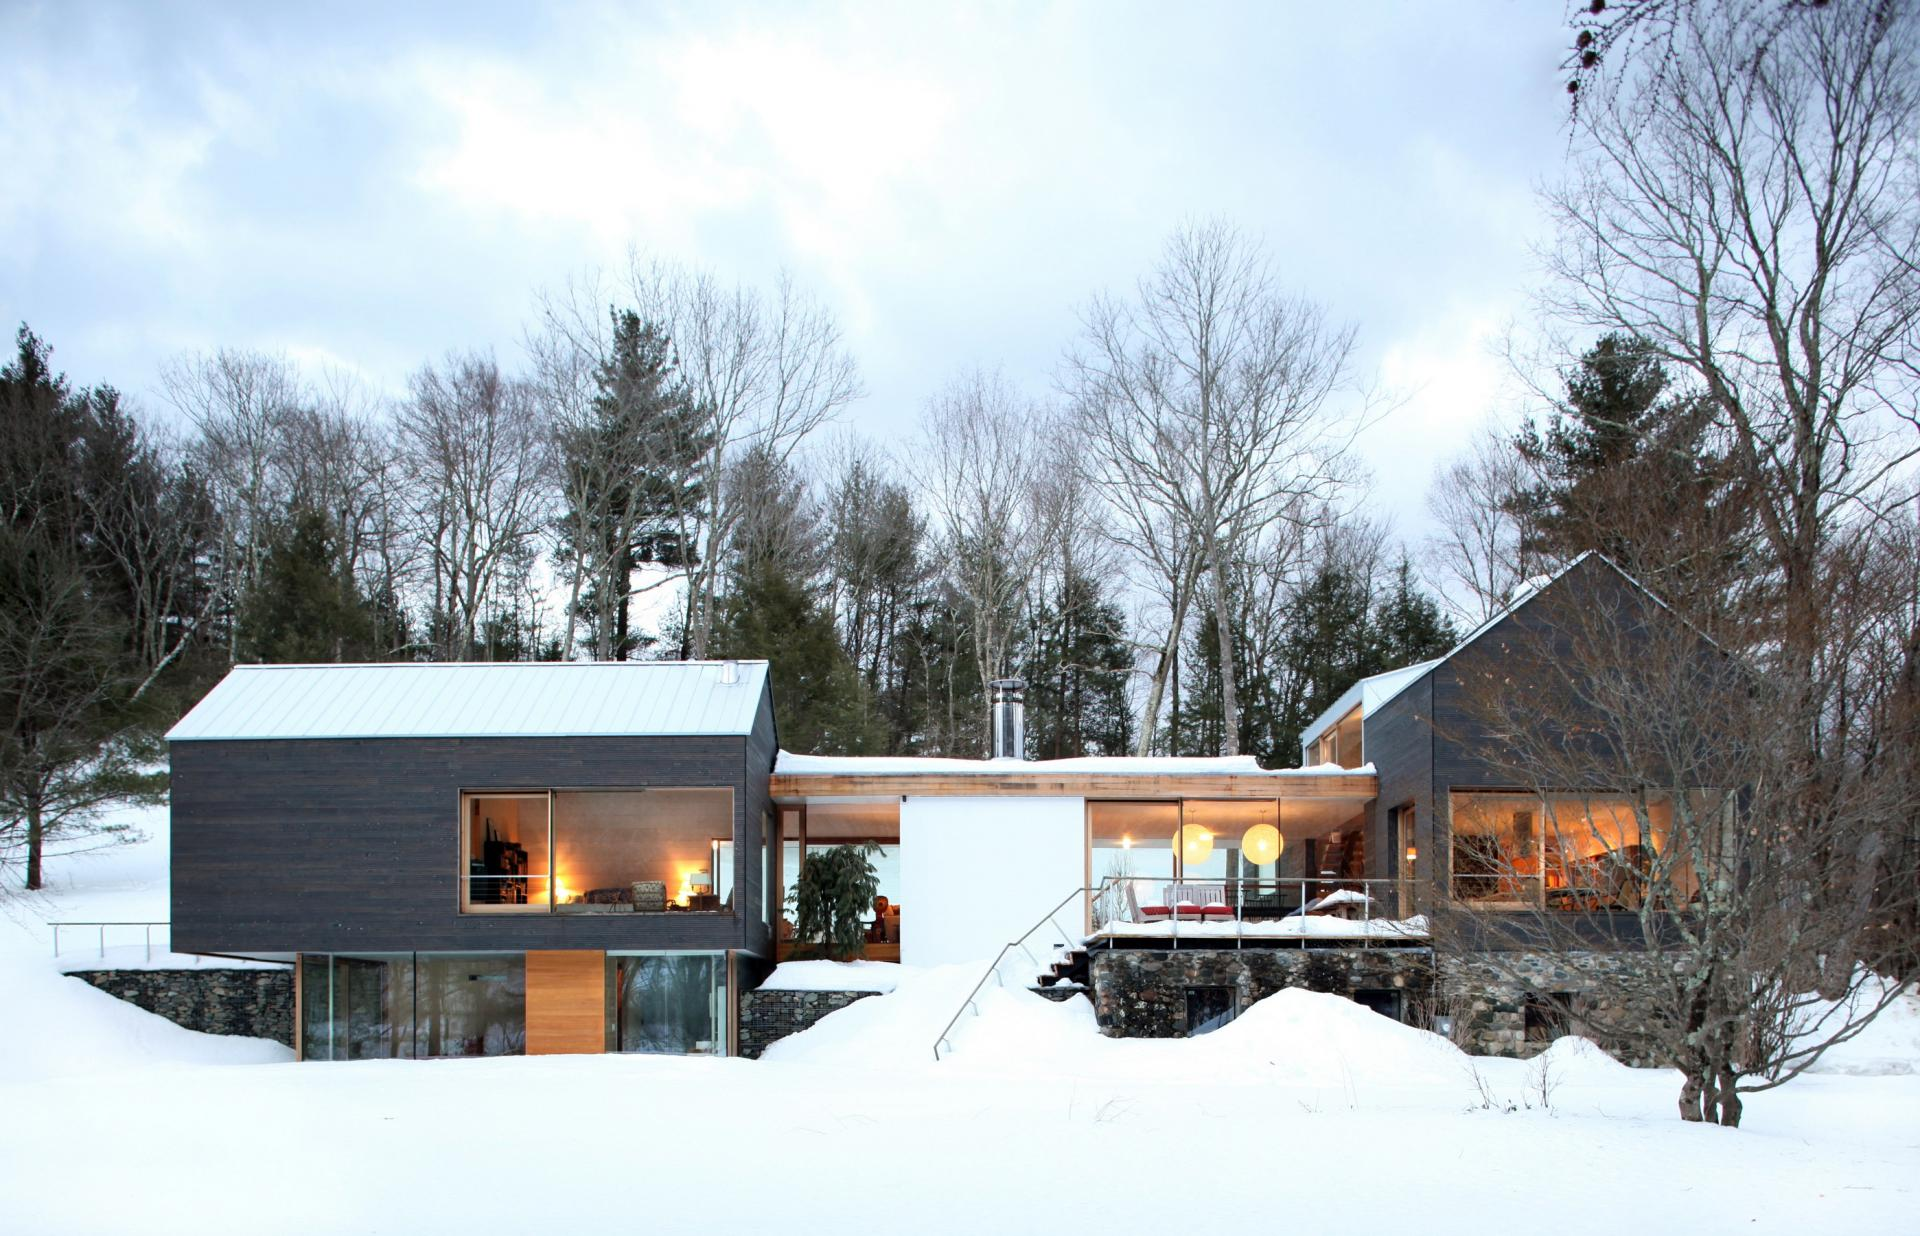 Snow, Lighting, Rural Retreat in Bantam, Connecticut